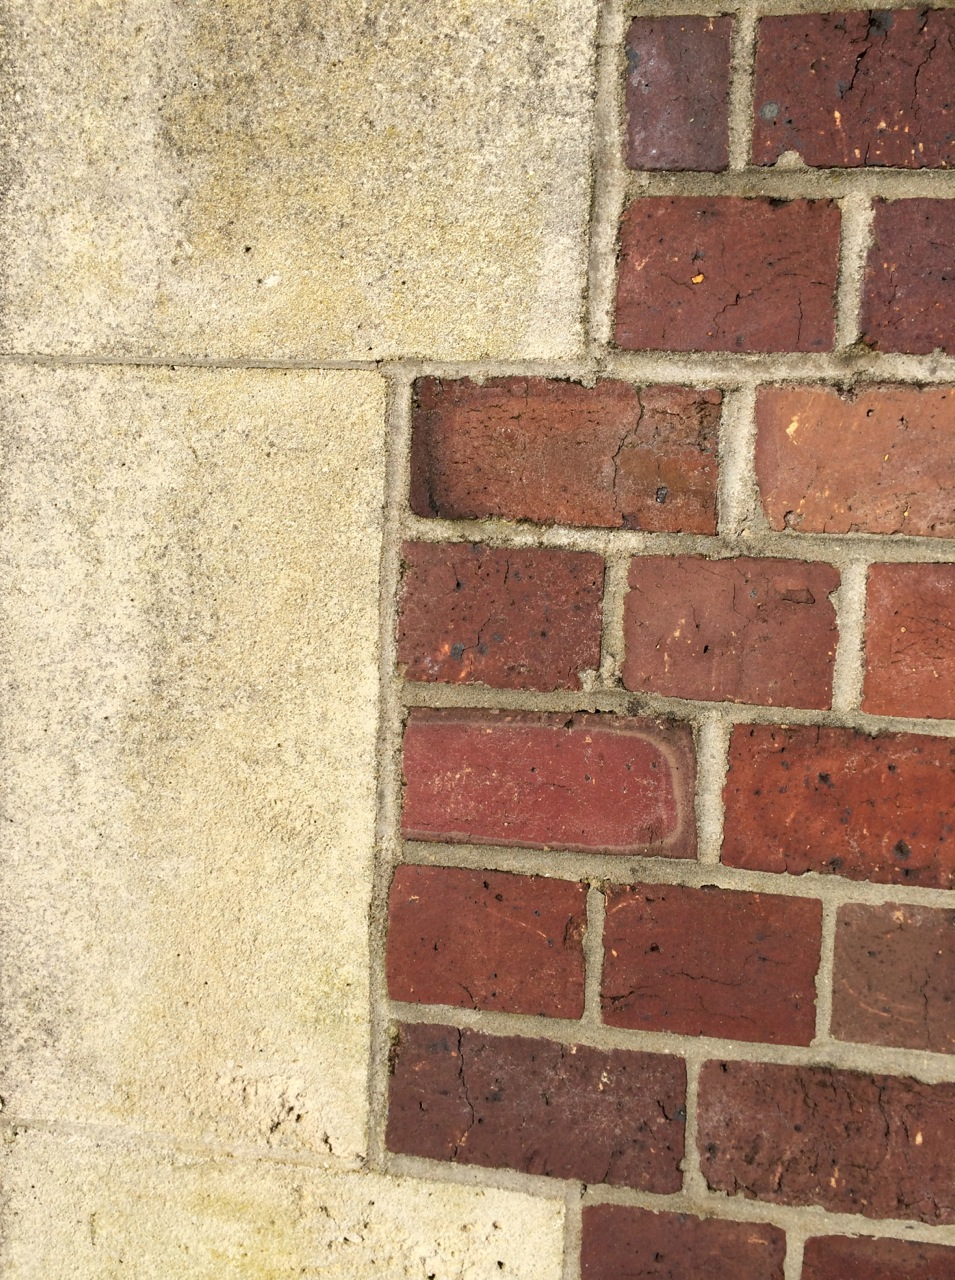 Oamaru stone and heritage brick construction